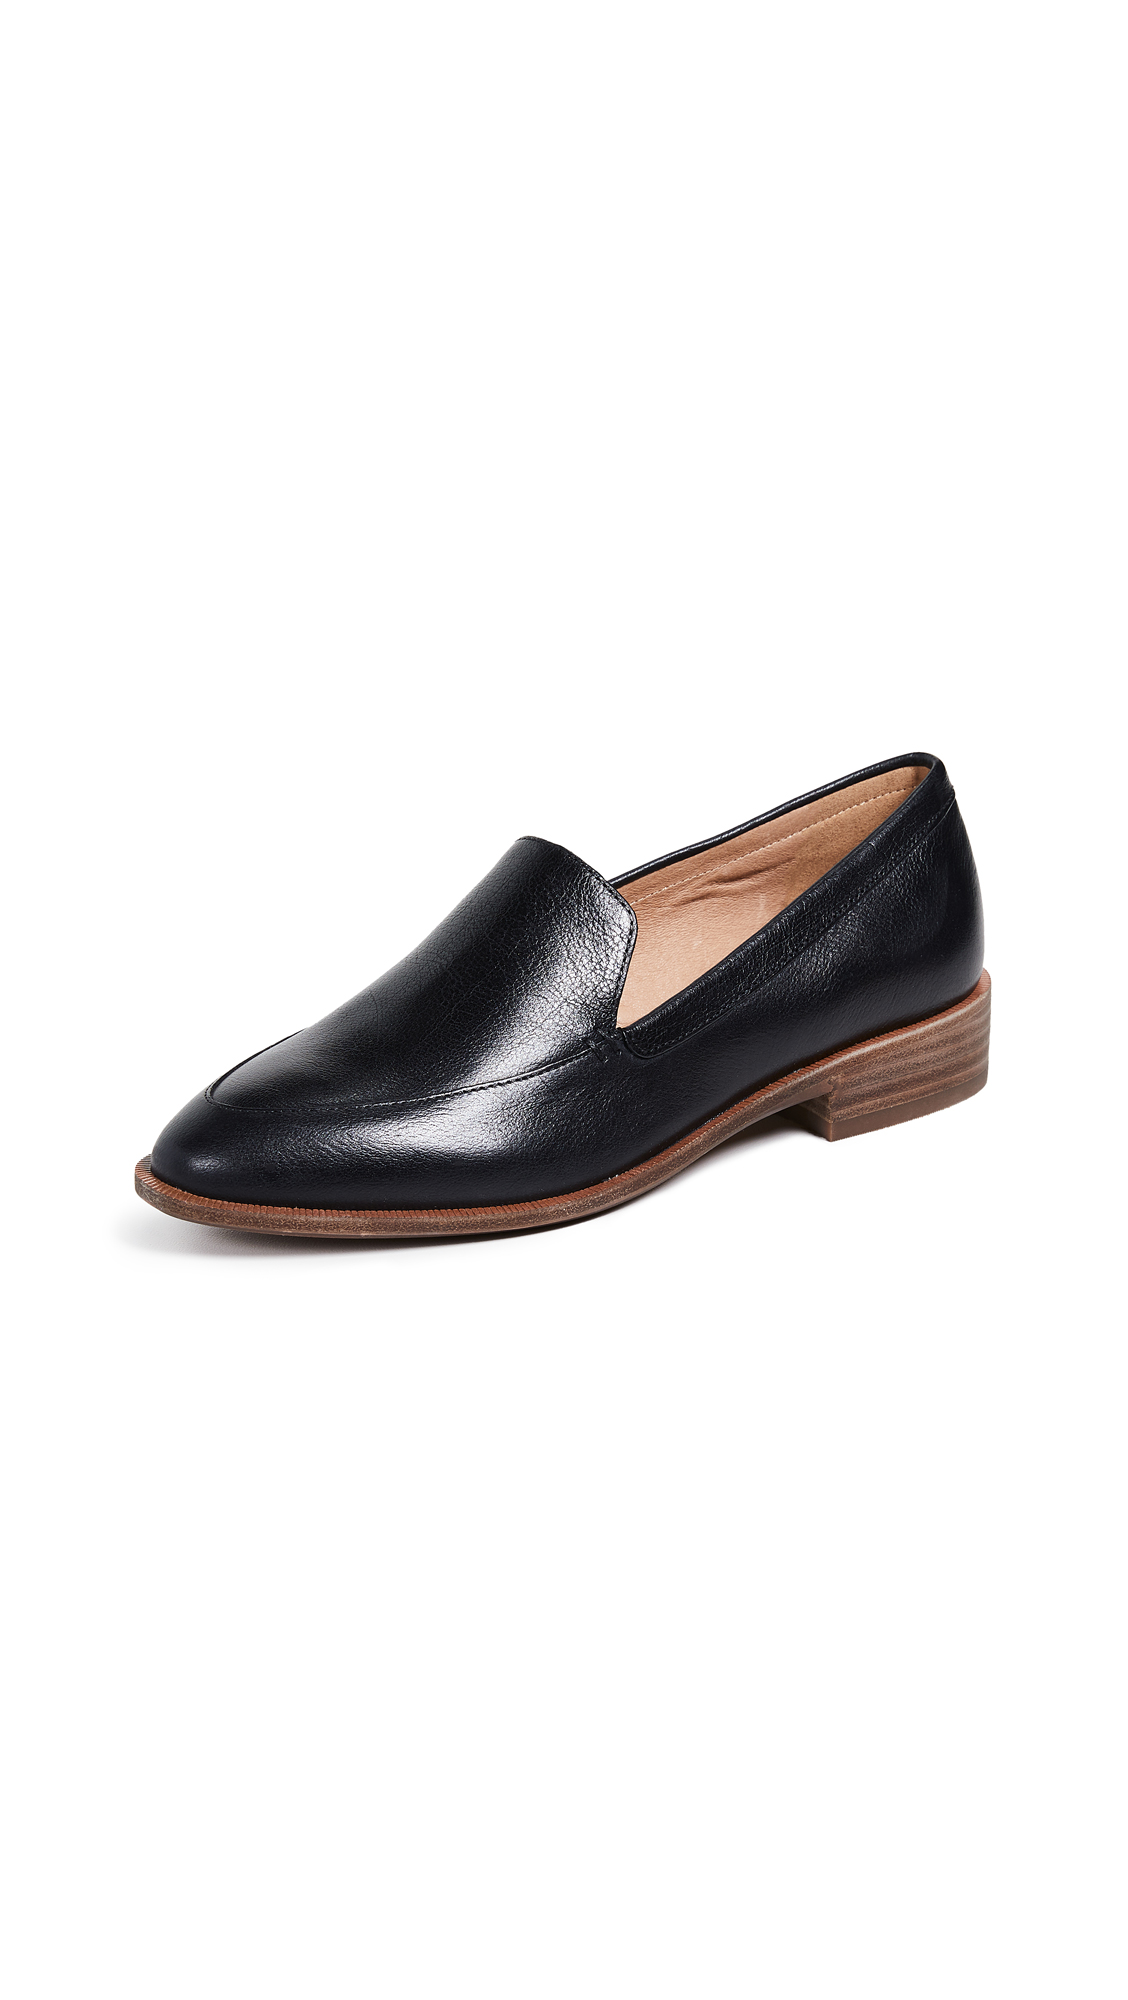 Buy Madewell The Frances Loafers online, shop Madewell